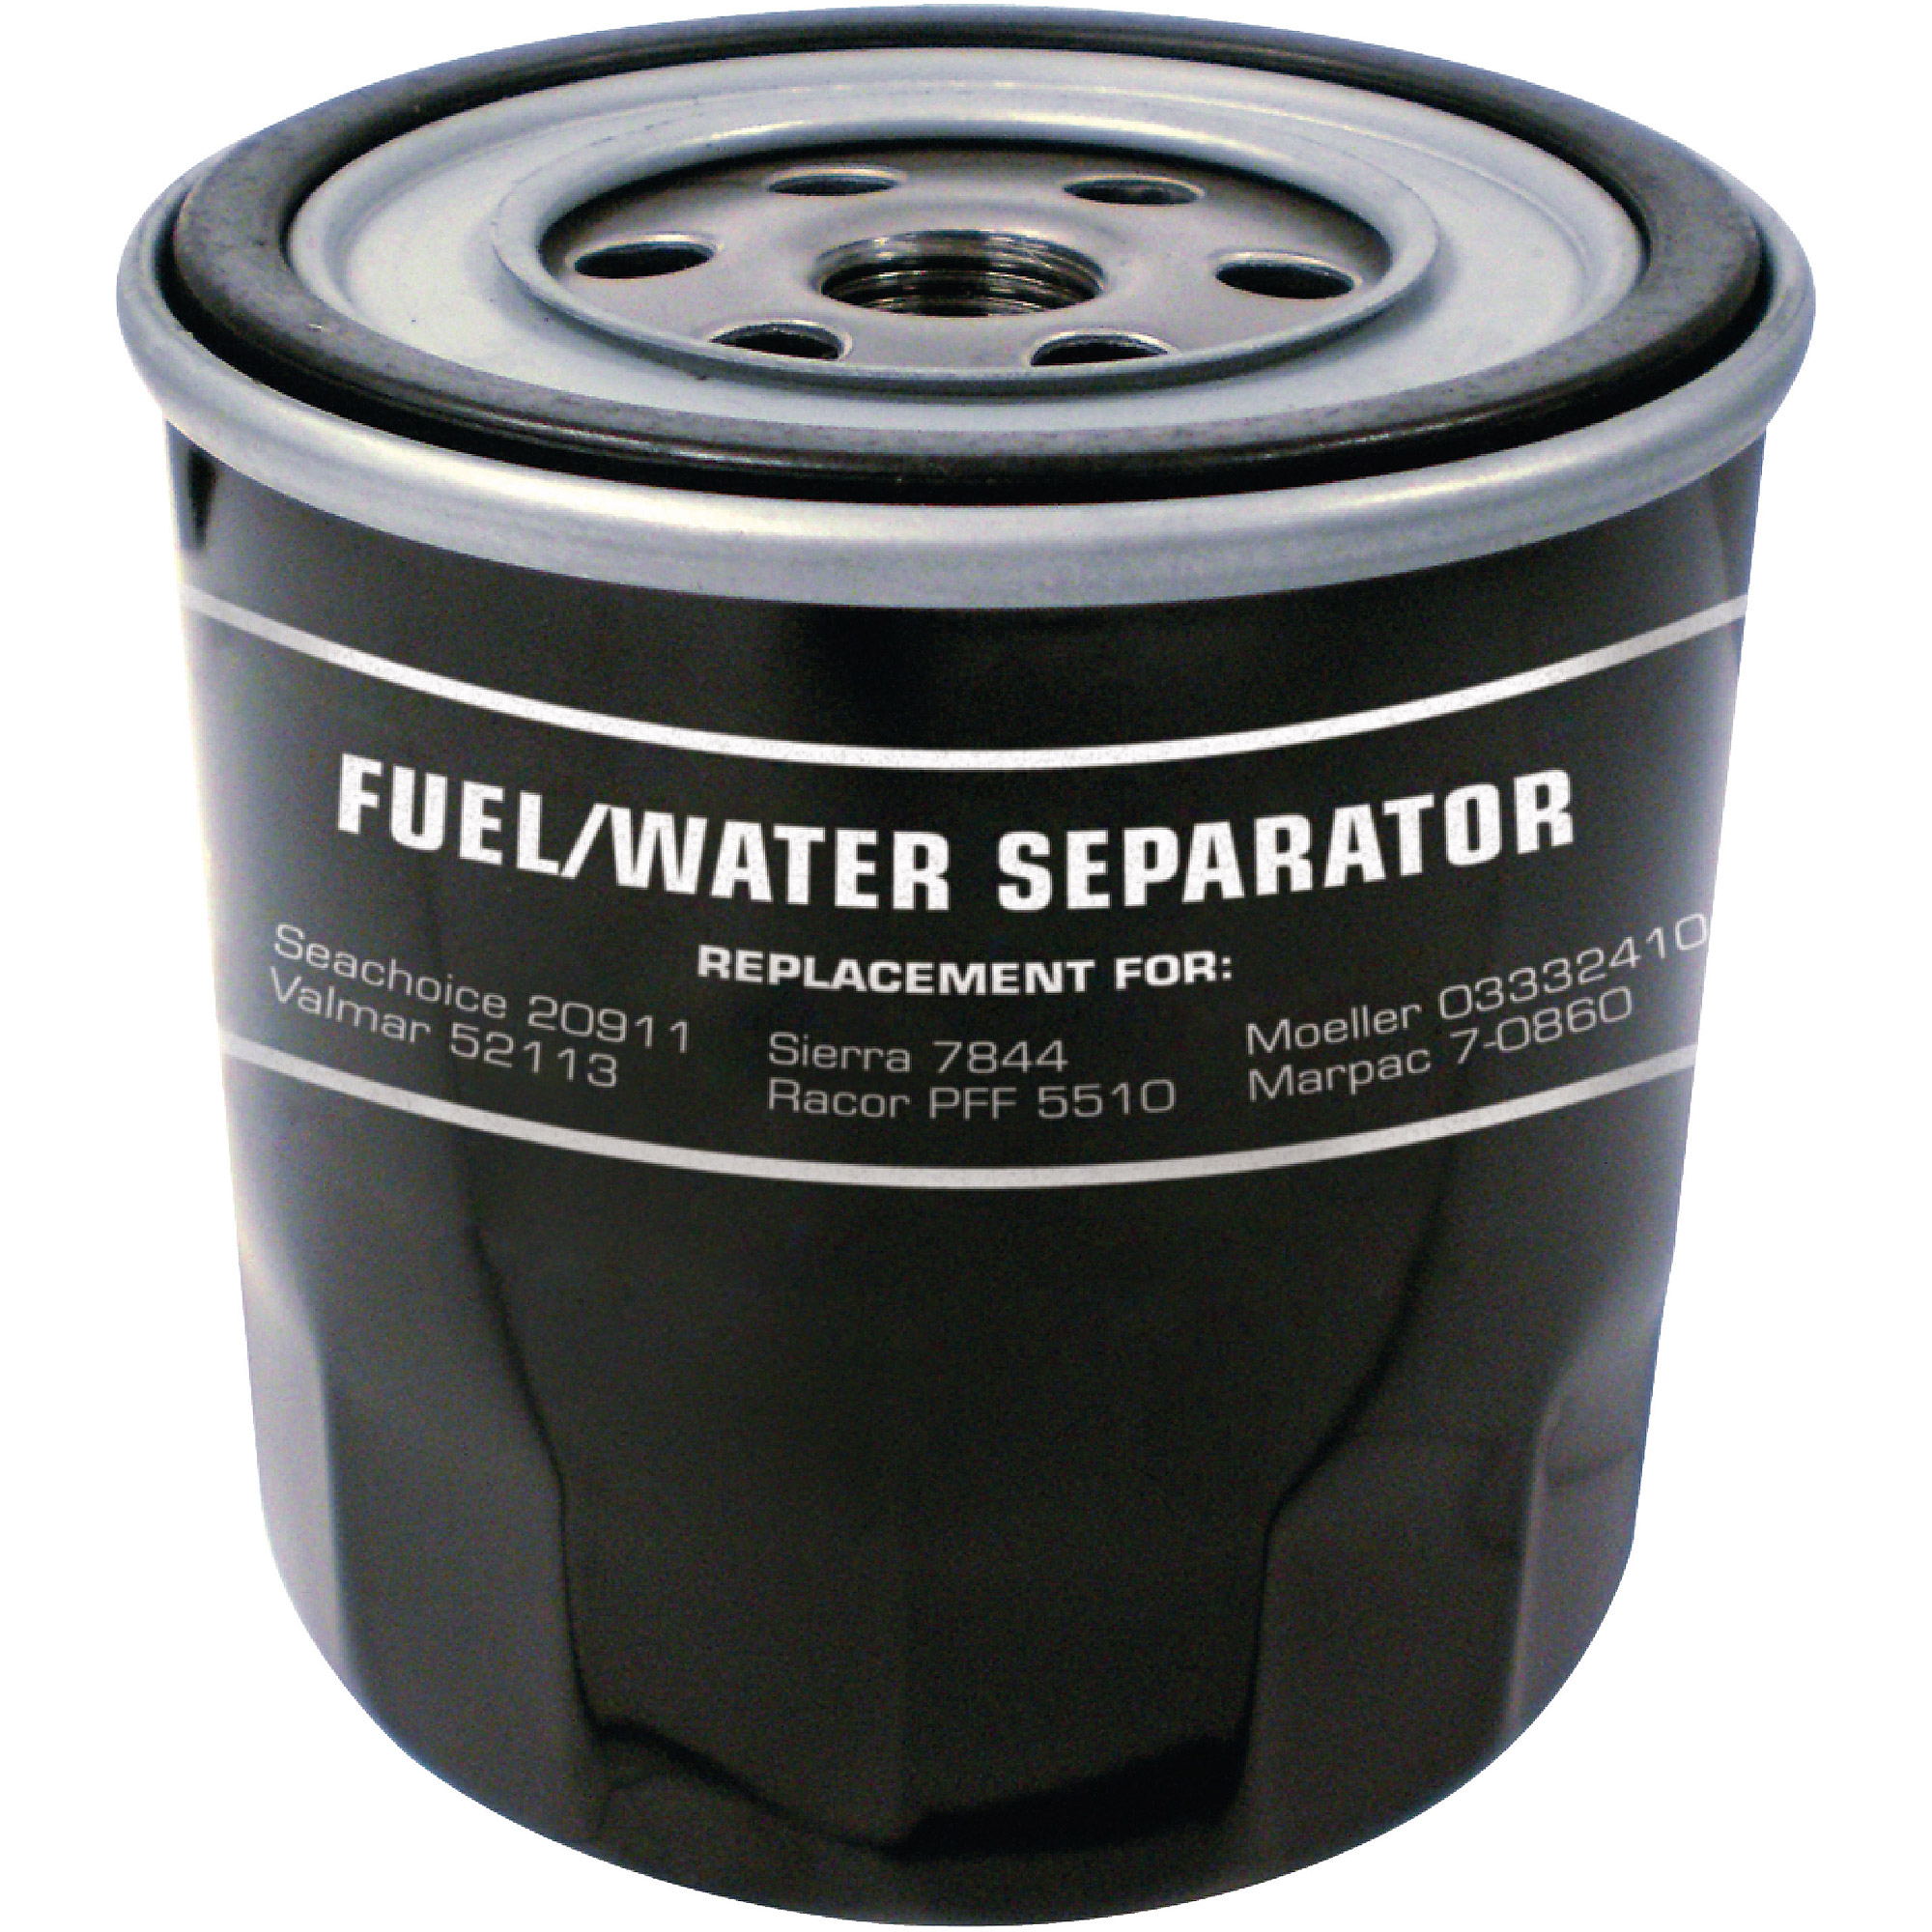 Seachoice Fuel Water Separator Canister Only by Seachoice